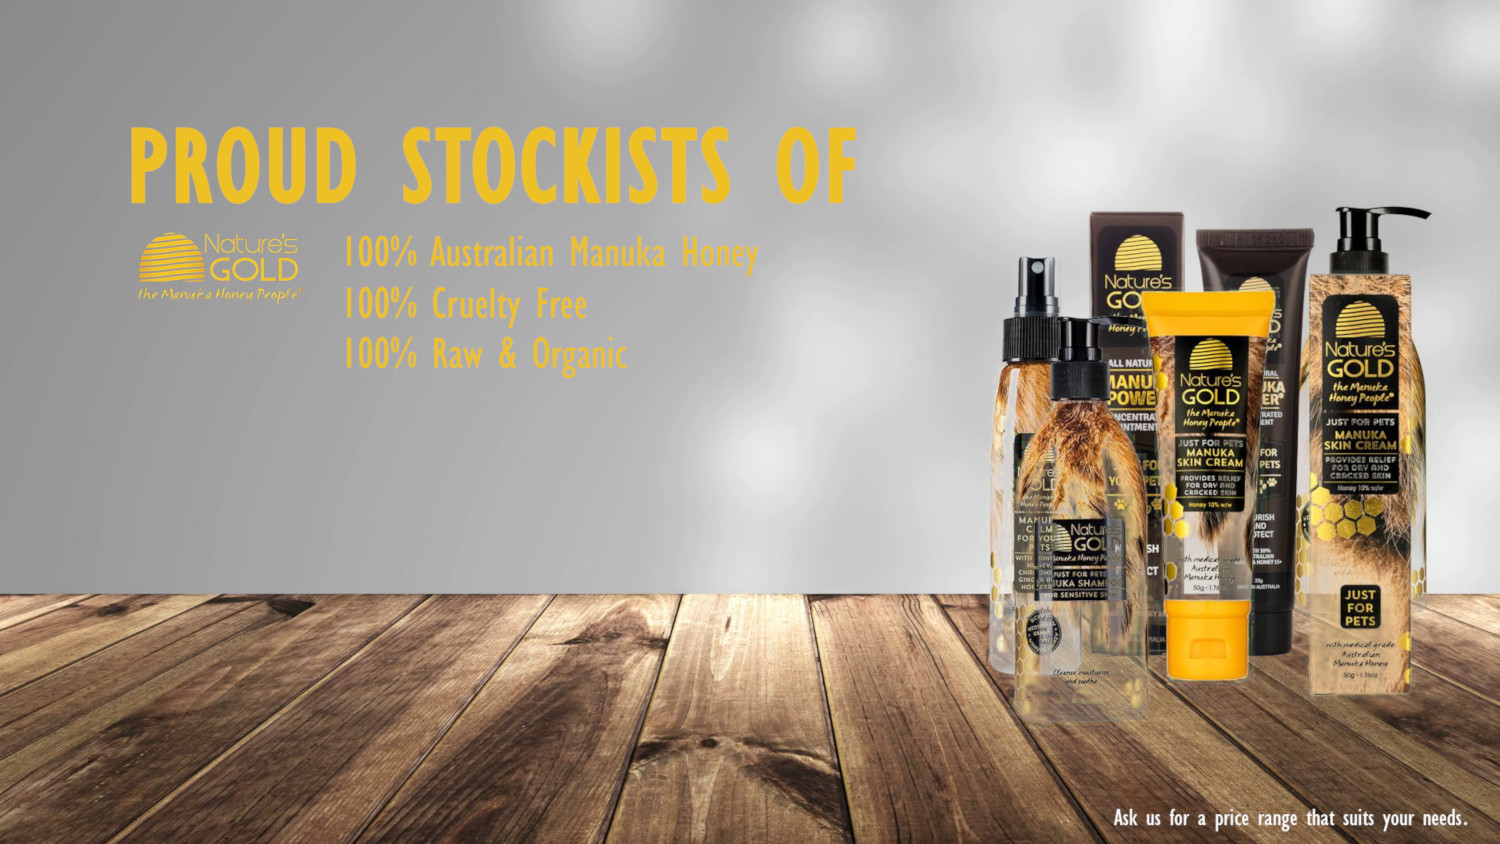 natures gold stockists